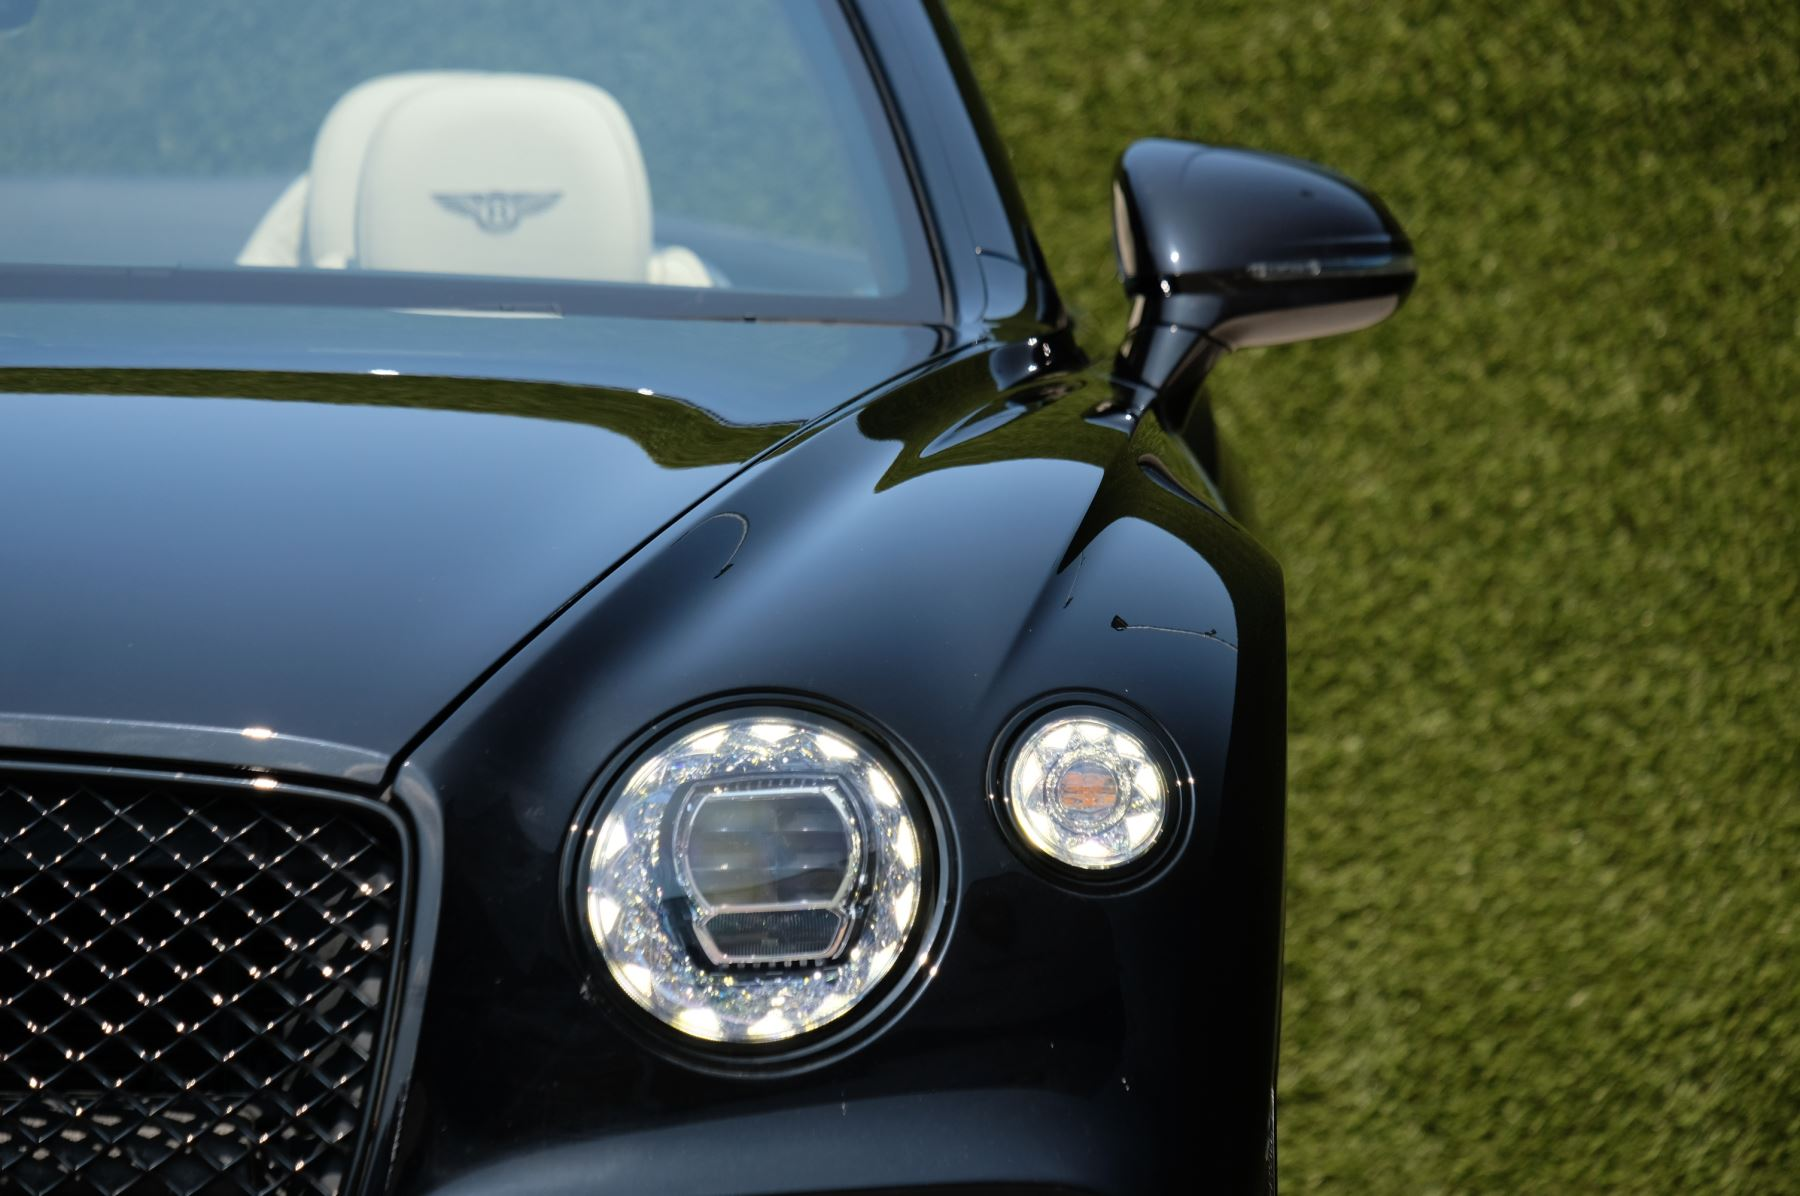 Bentley Continental GTC 6.0 W12 - Mulliner Driving Specification and Centenary Specification image 6